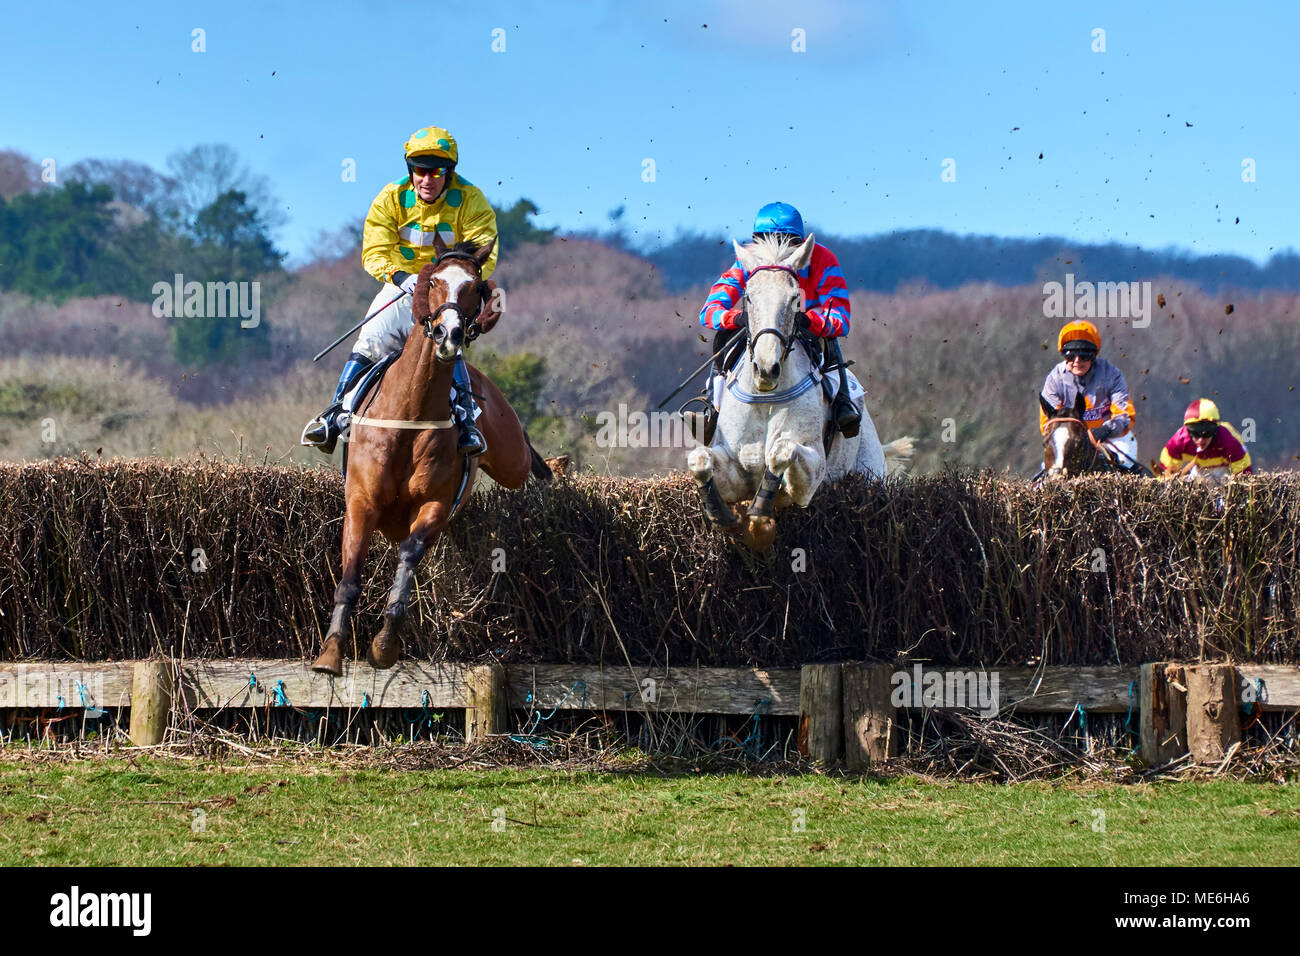 Two horses and riders jumping a fence during a point-to-point event Stock Photo